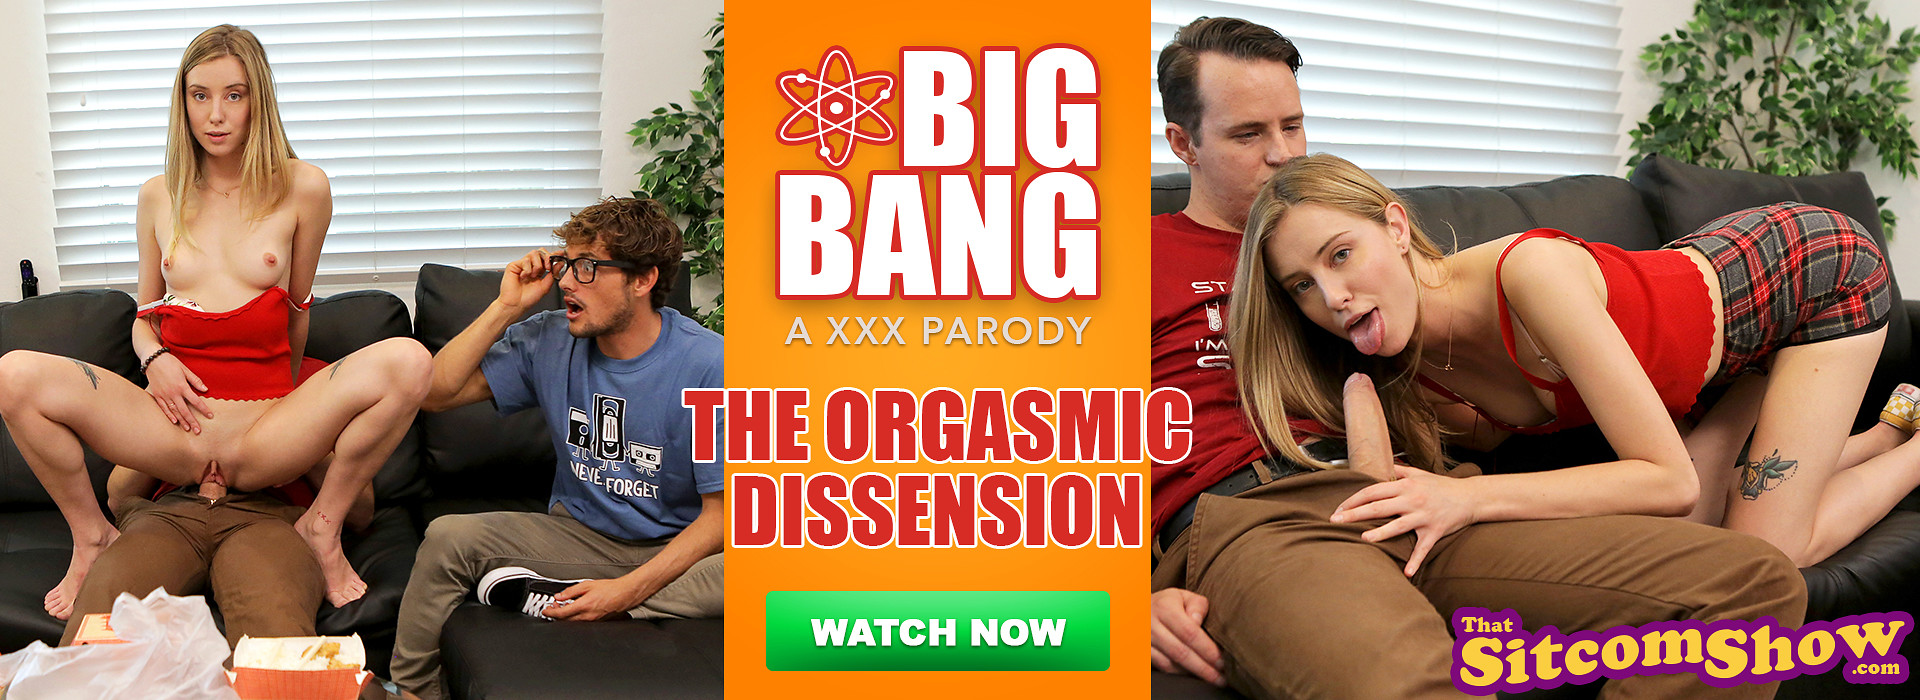 Big Bang The Orgasmic Dissension